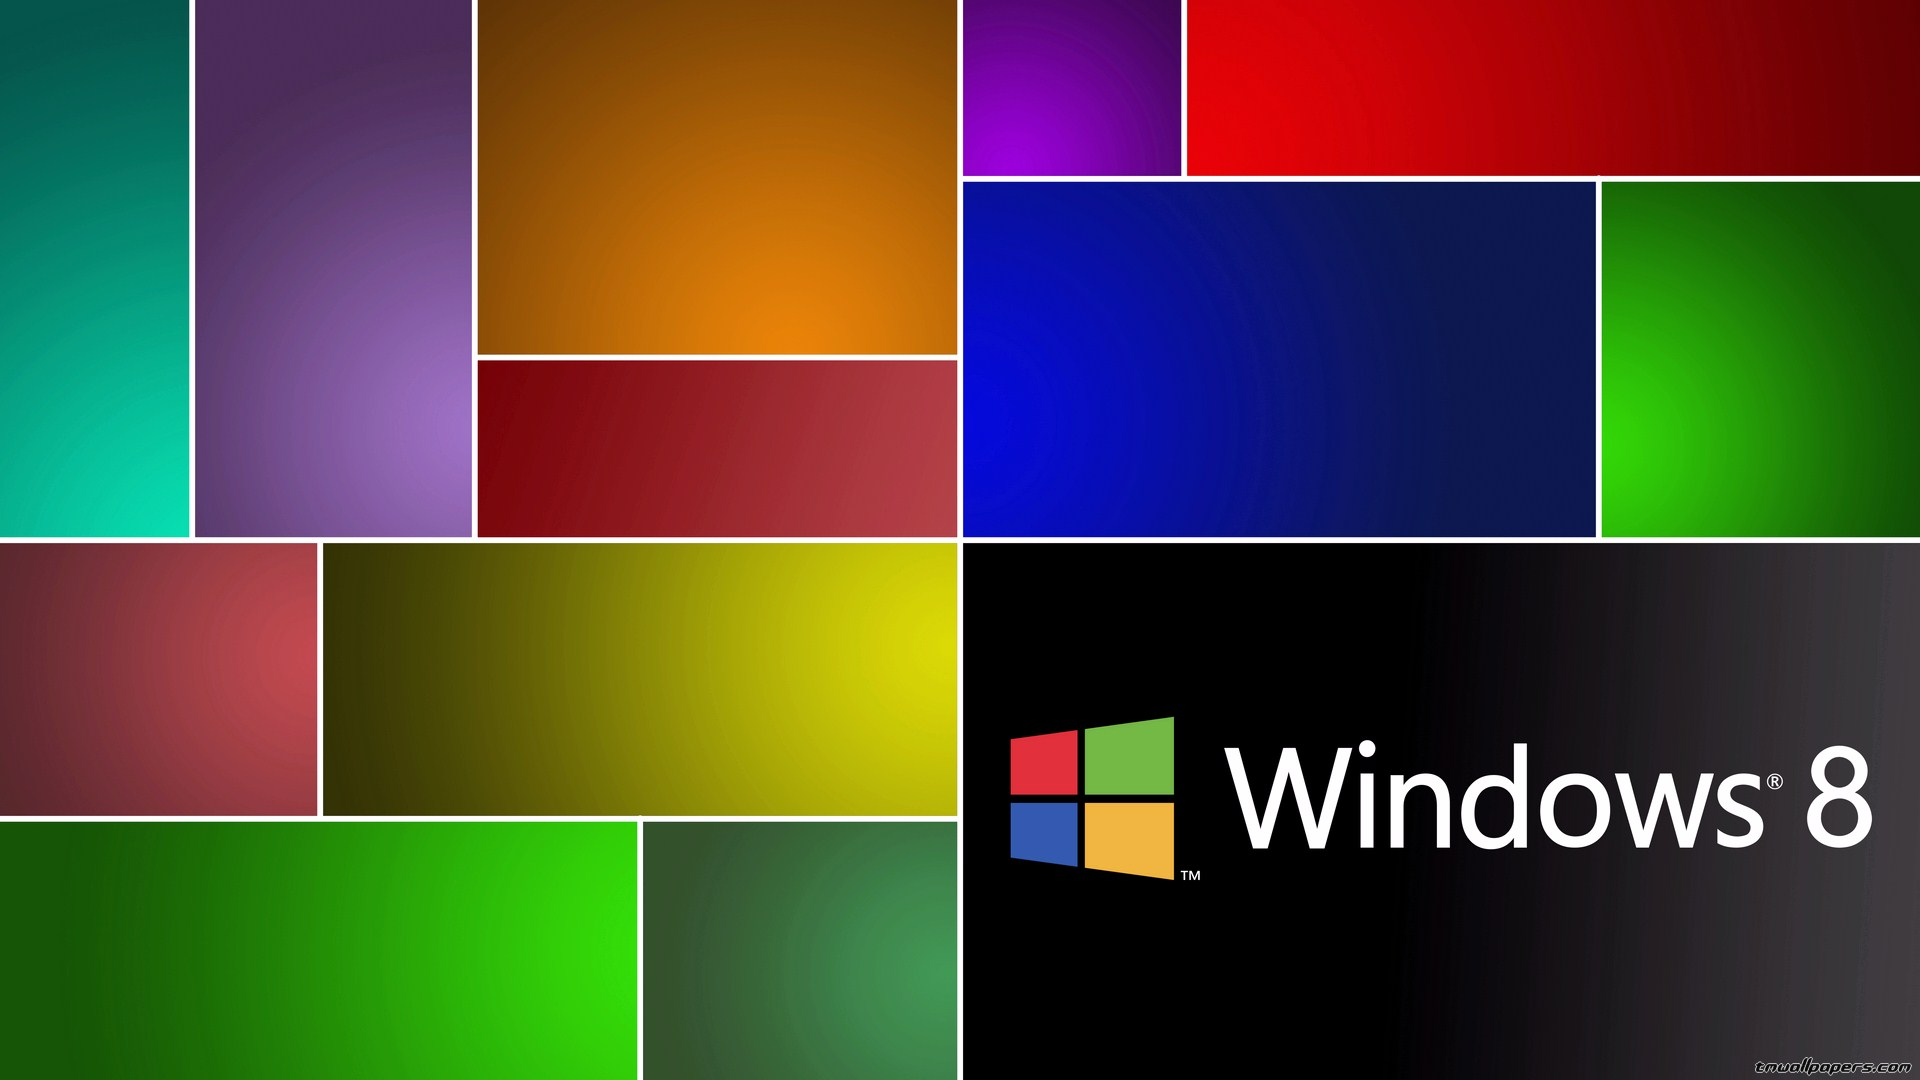 windows 8.1 wallpaper 1920x1080 - wallpapersafari